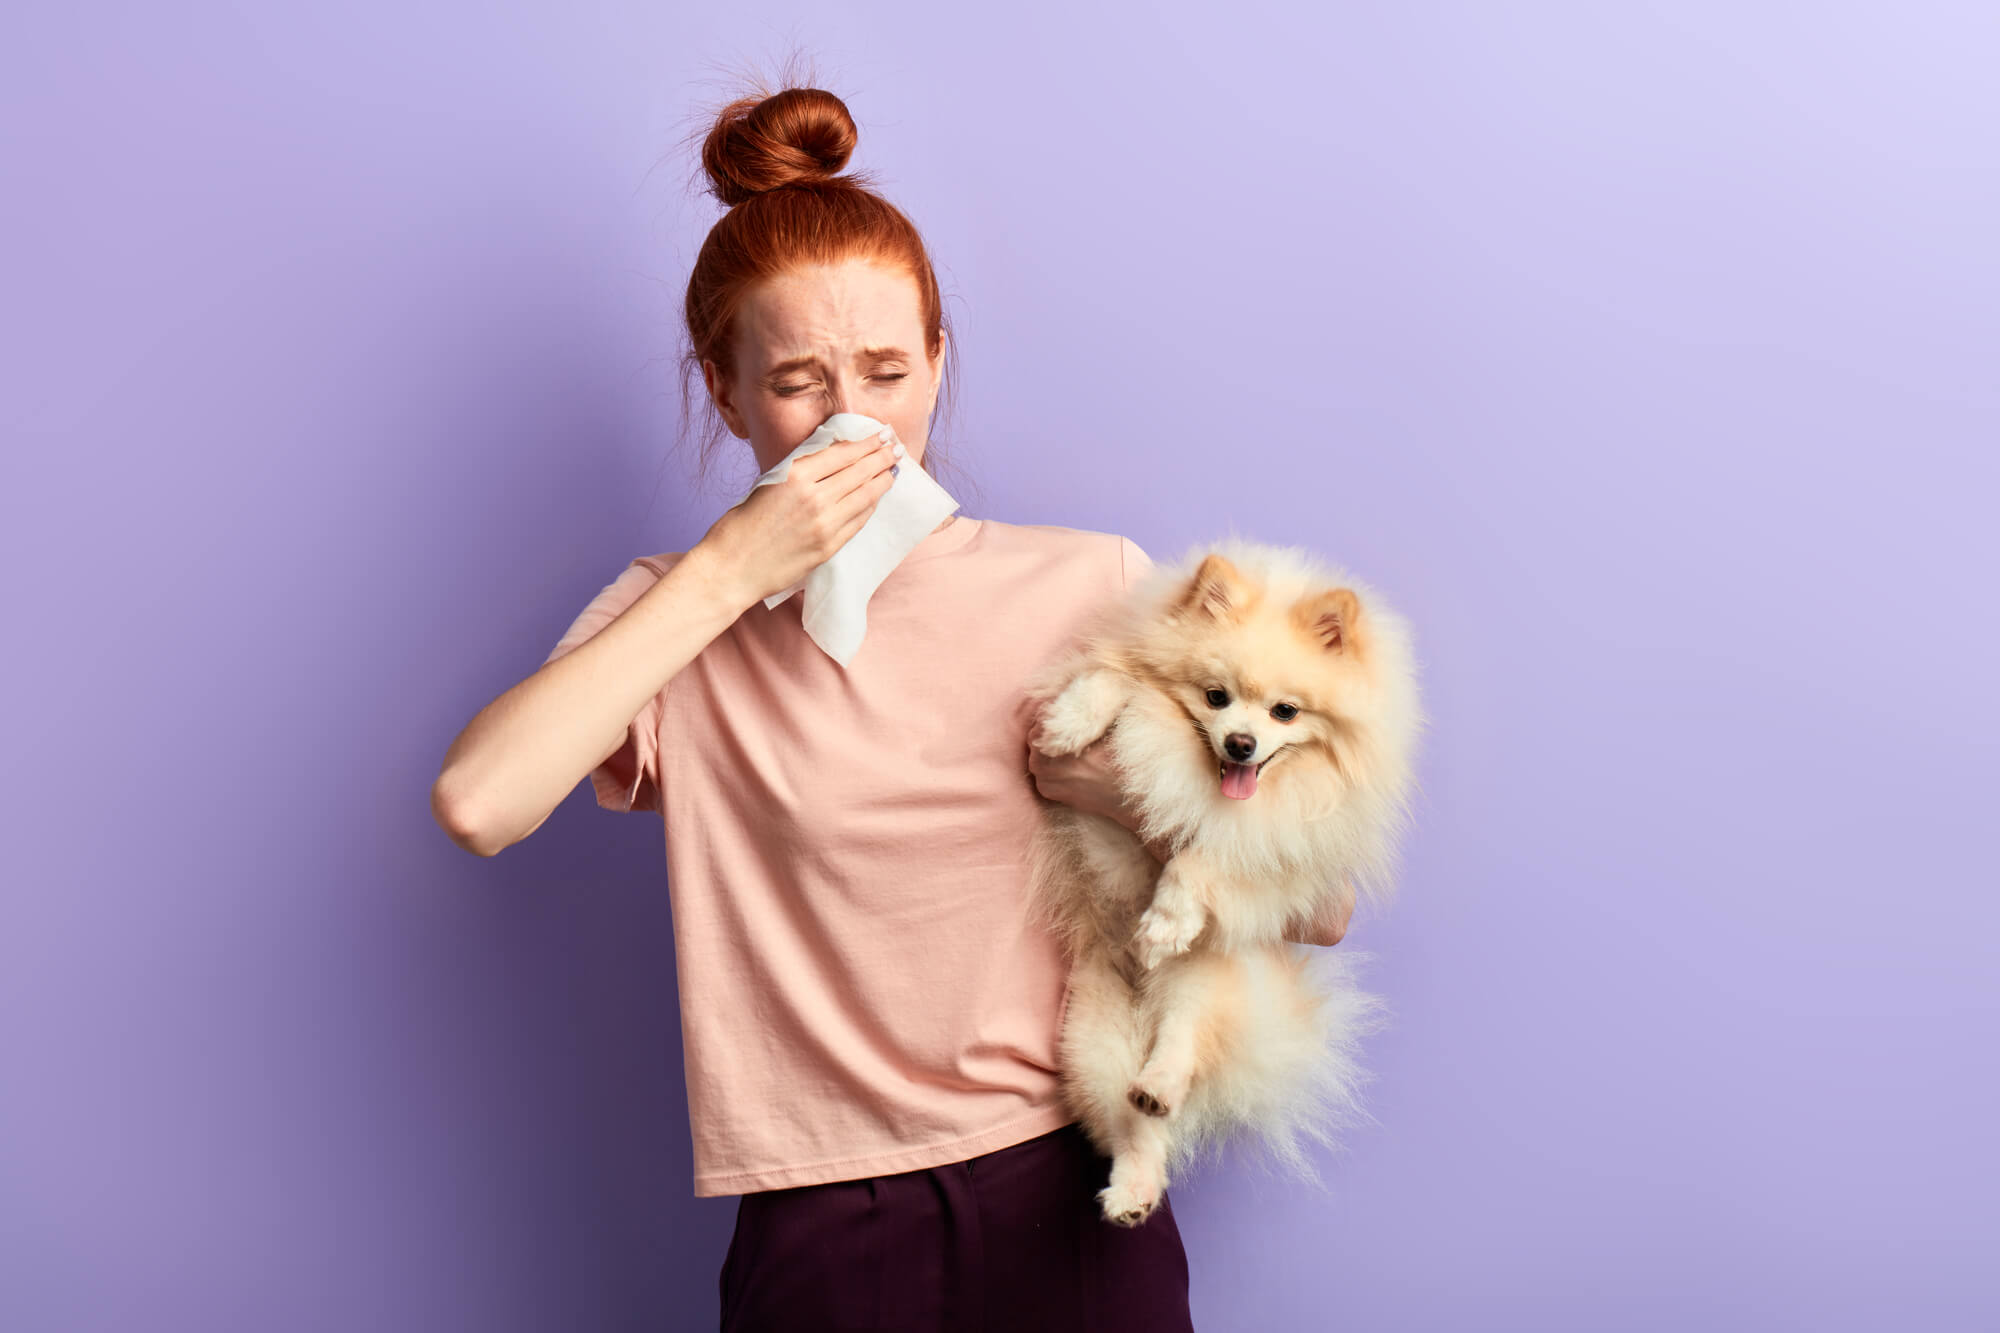 Considering renting to pet owners? You may have to clean between tenants to get rid of allergens and smell.